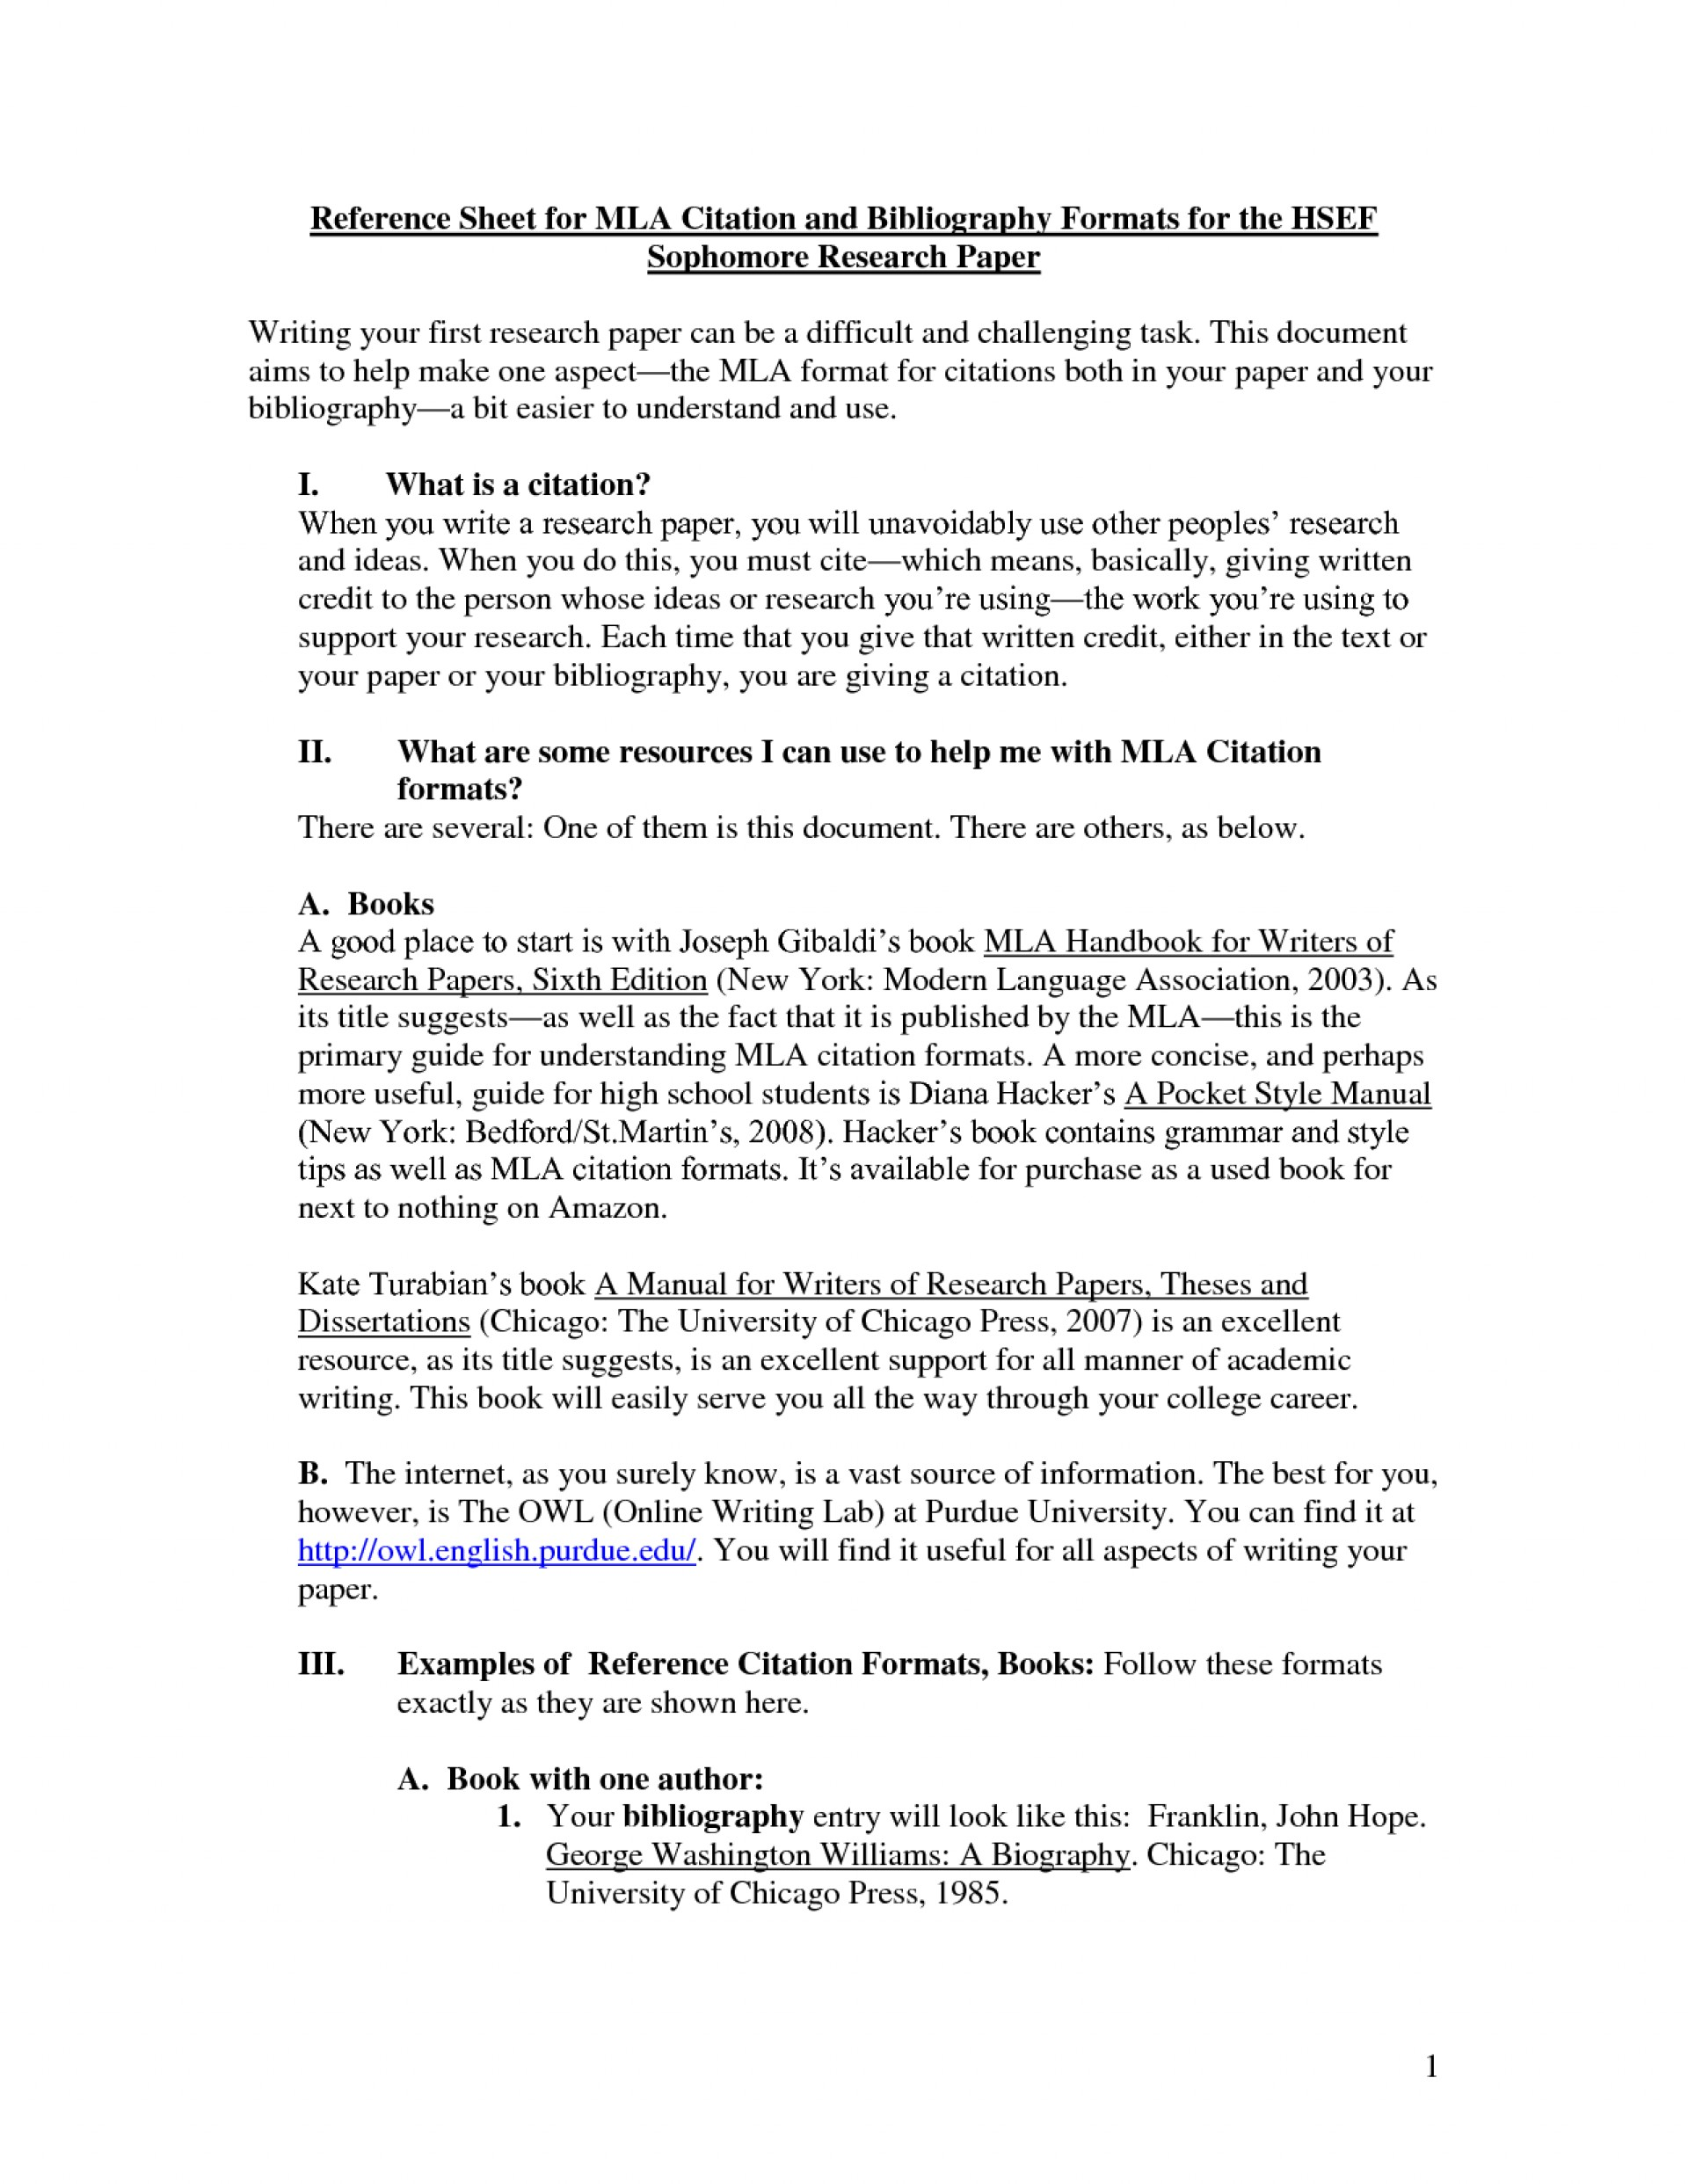 016 Citing Sources In Research Paper Mla Best Solutions Of An Essay Citation What Is Format For Also How Do You Cite Astounding A Websites Within 1920